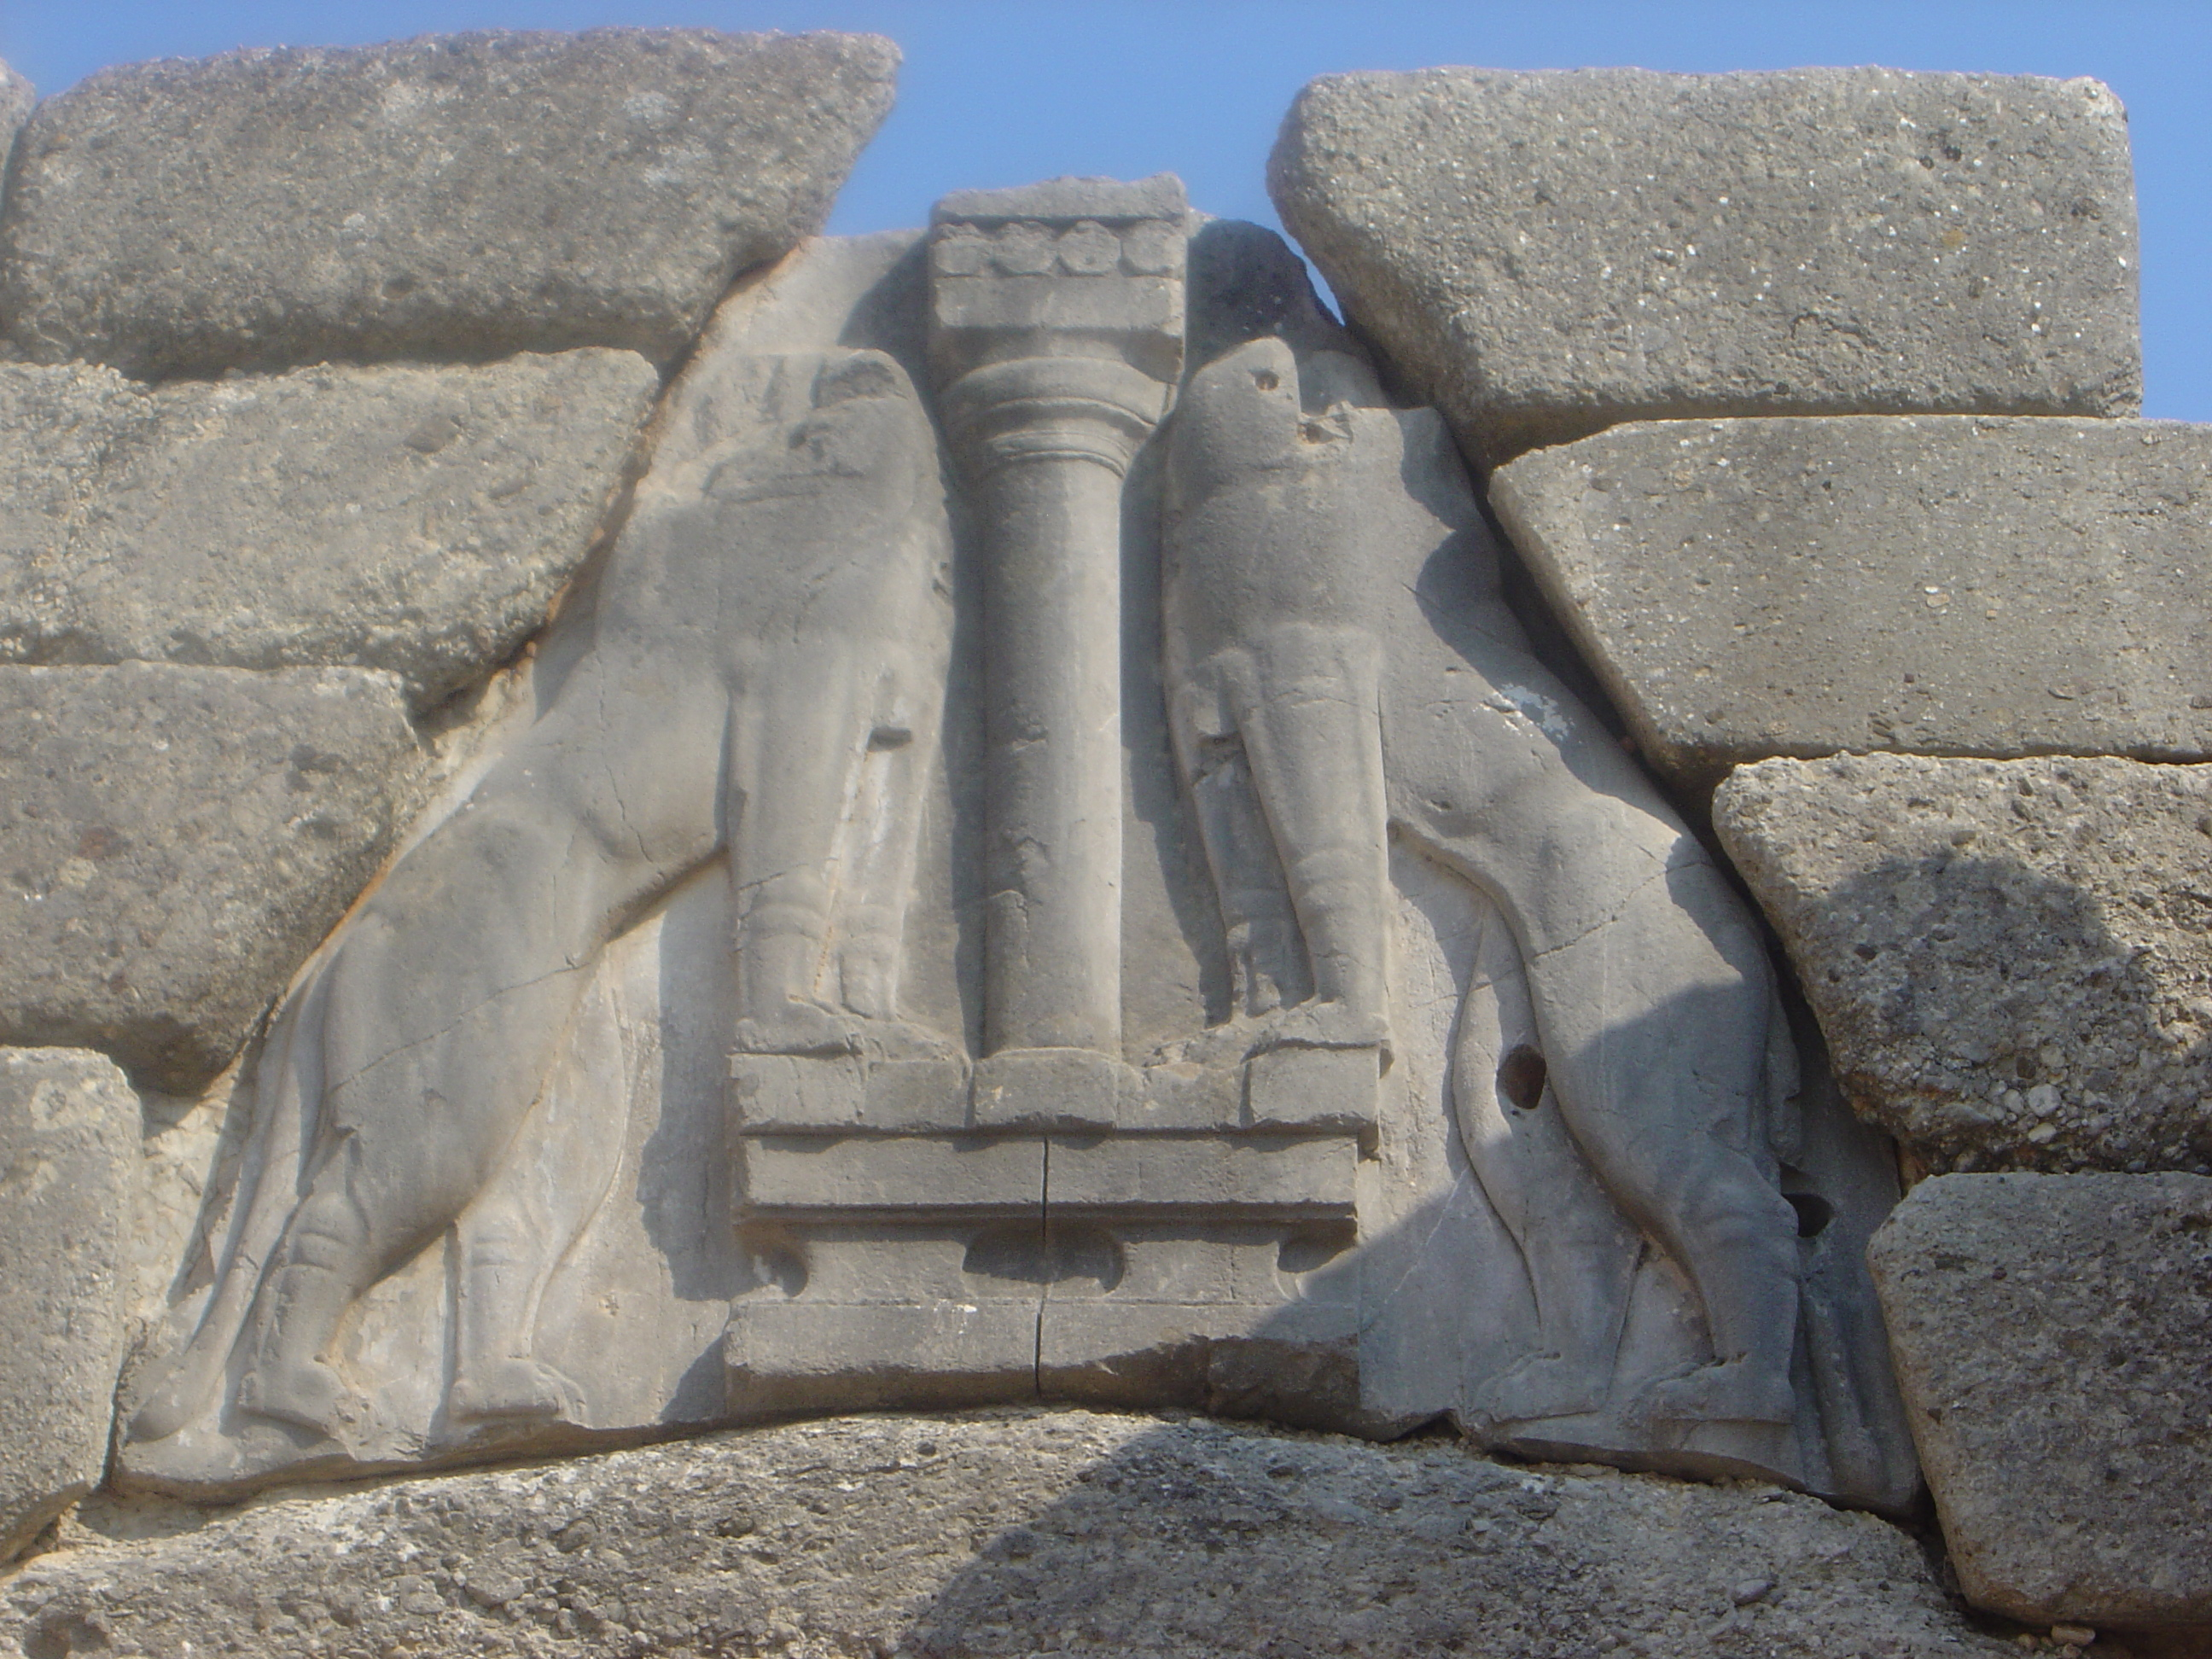 http://upload.wikimedia.org/wikipedia/commons/4/4a/Mycenae_lion_gate_detail_dsc06384.jpg